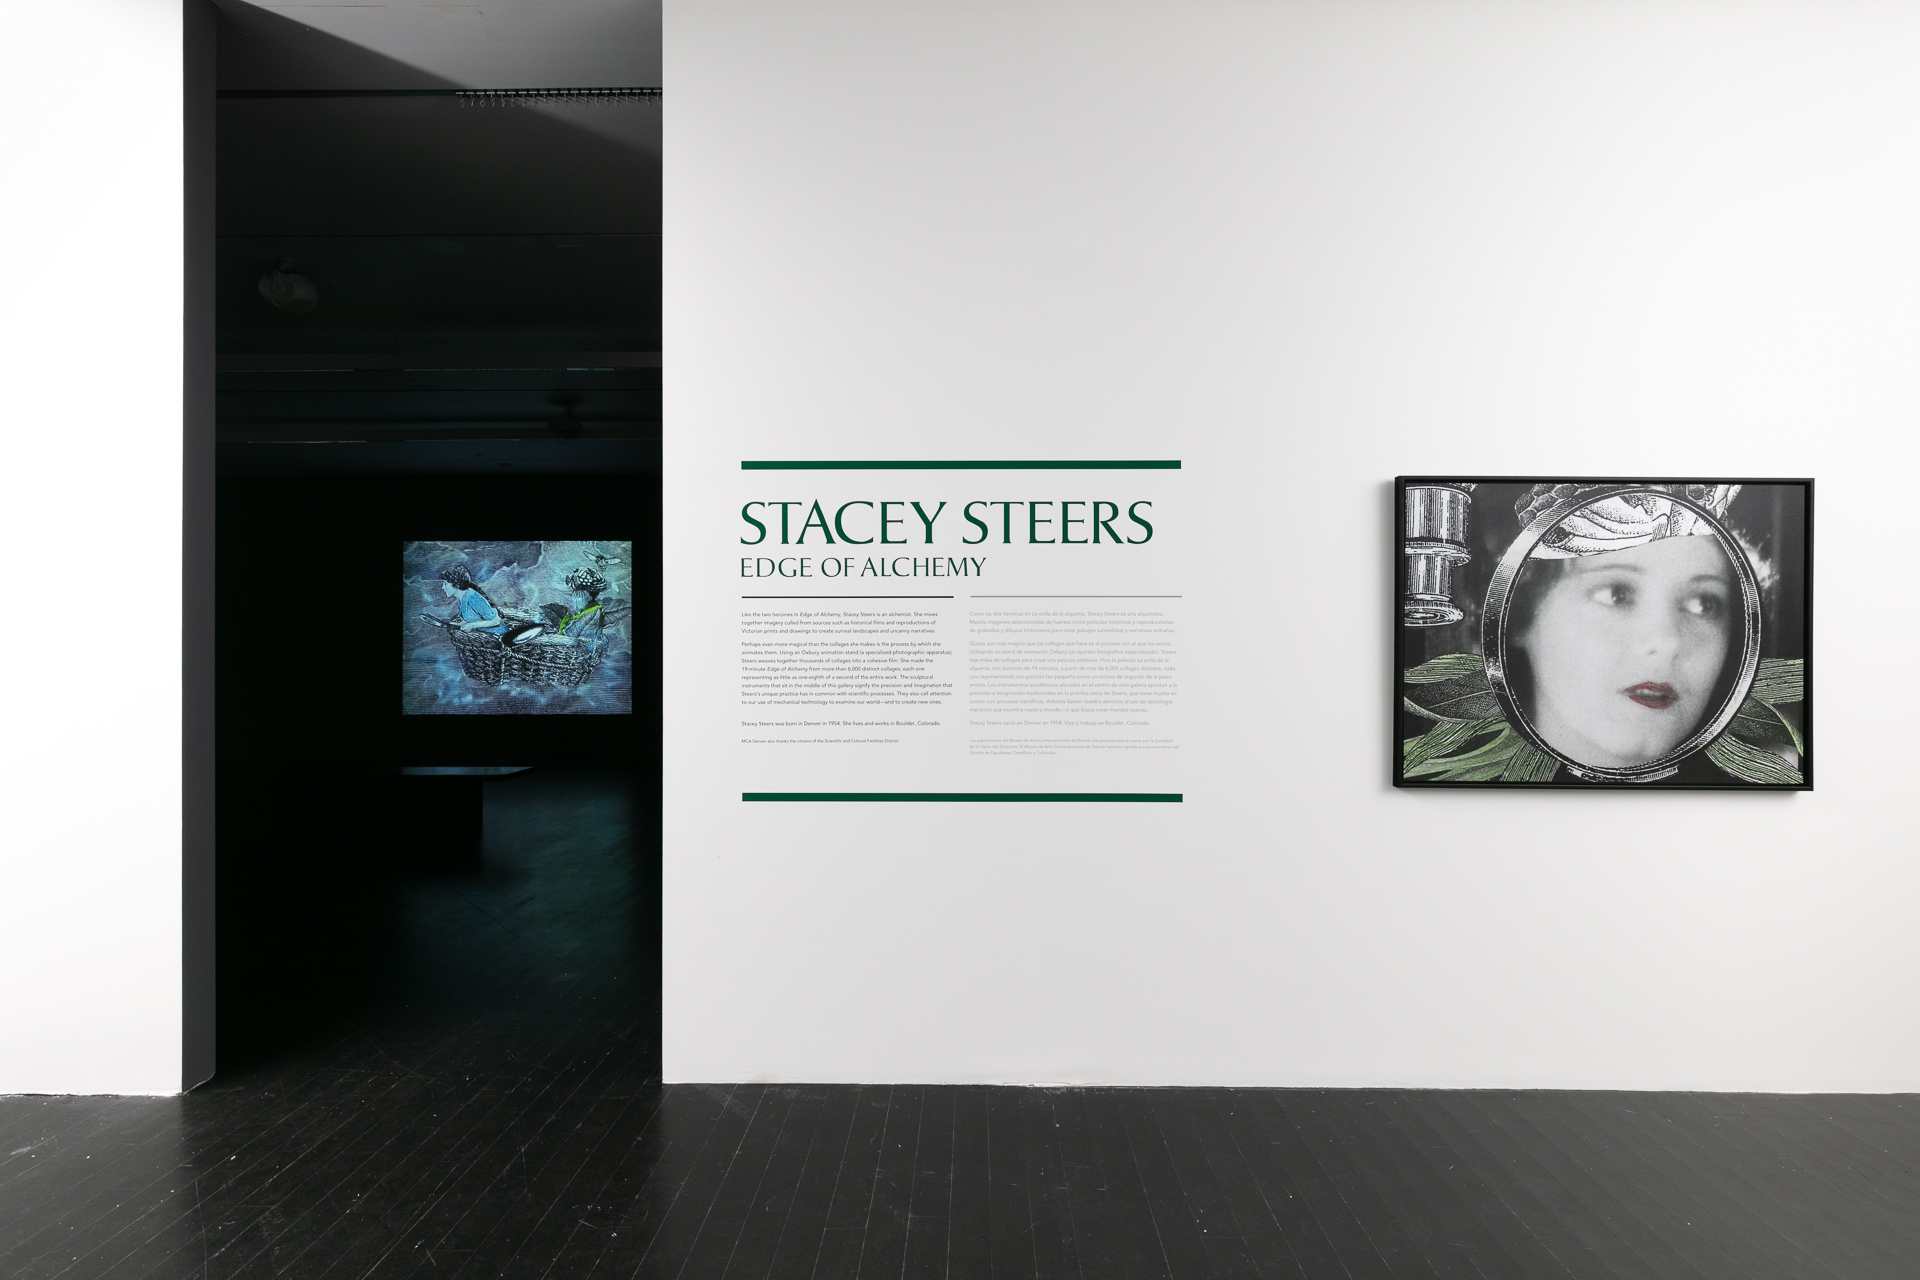 STACEY STEERS IN CONVERSATION WITH ZOE LARKINS